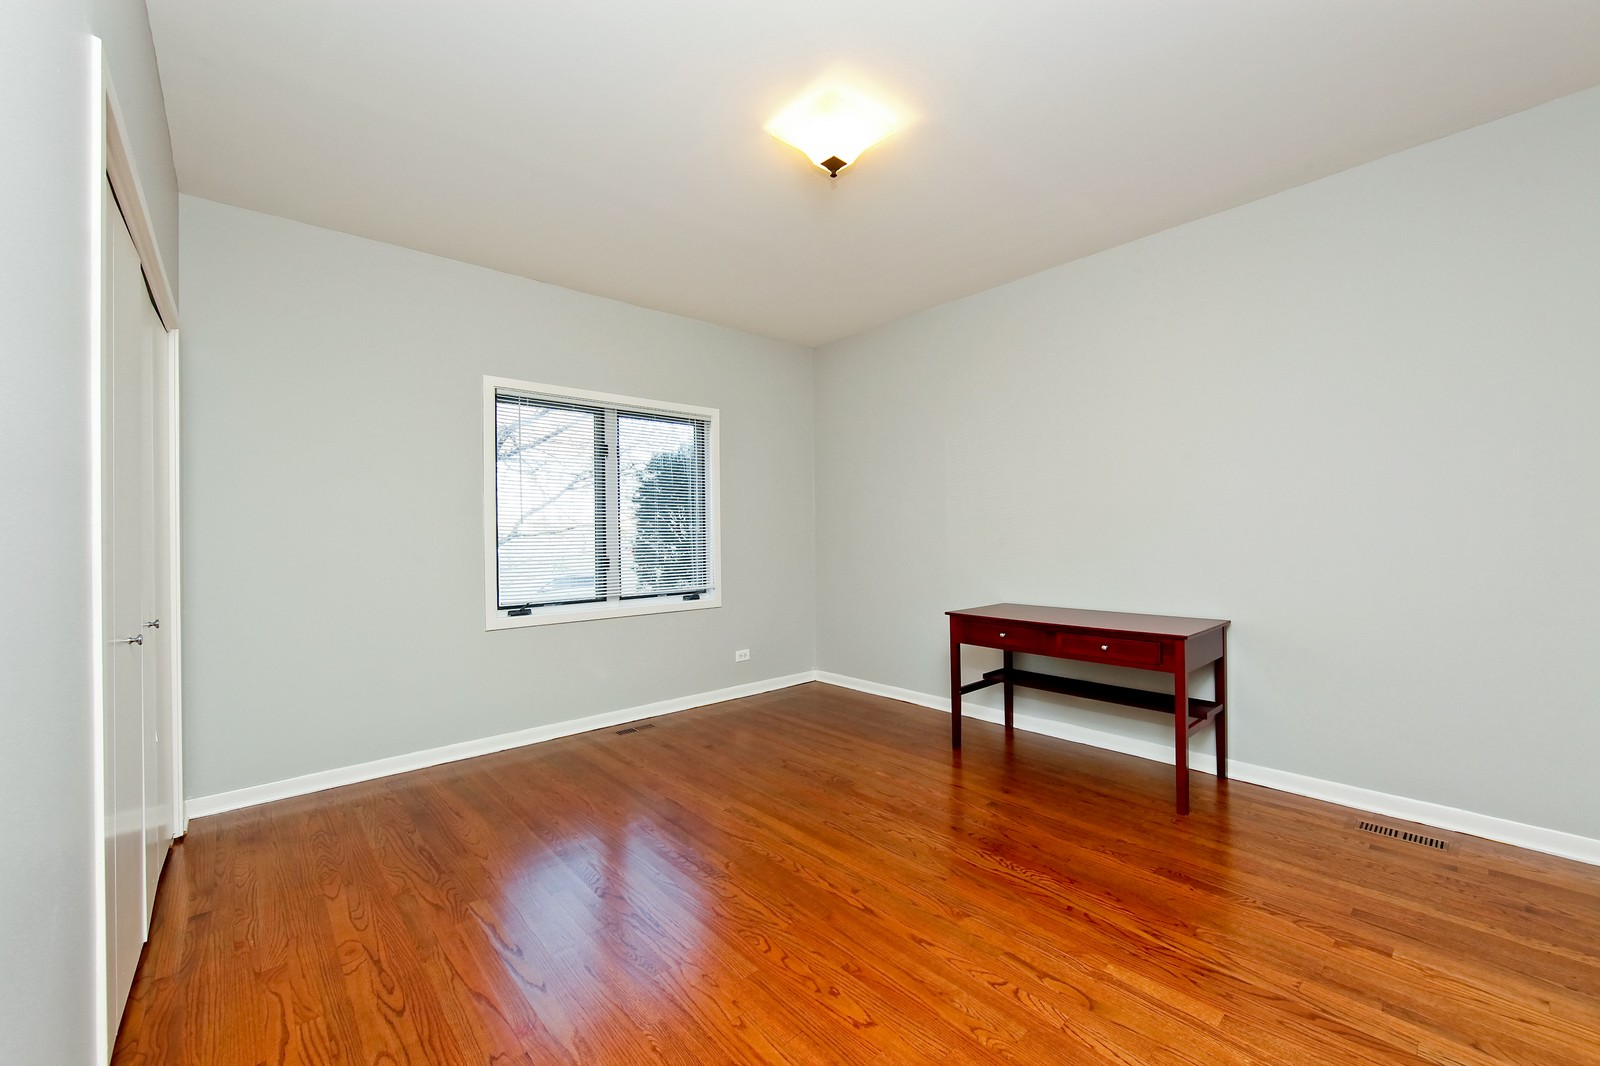 Real Estate Photography - 915 N. Racine Ave, 1NW, Chicago, IL, 60622 - Master Bedroom